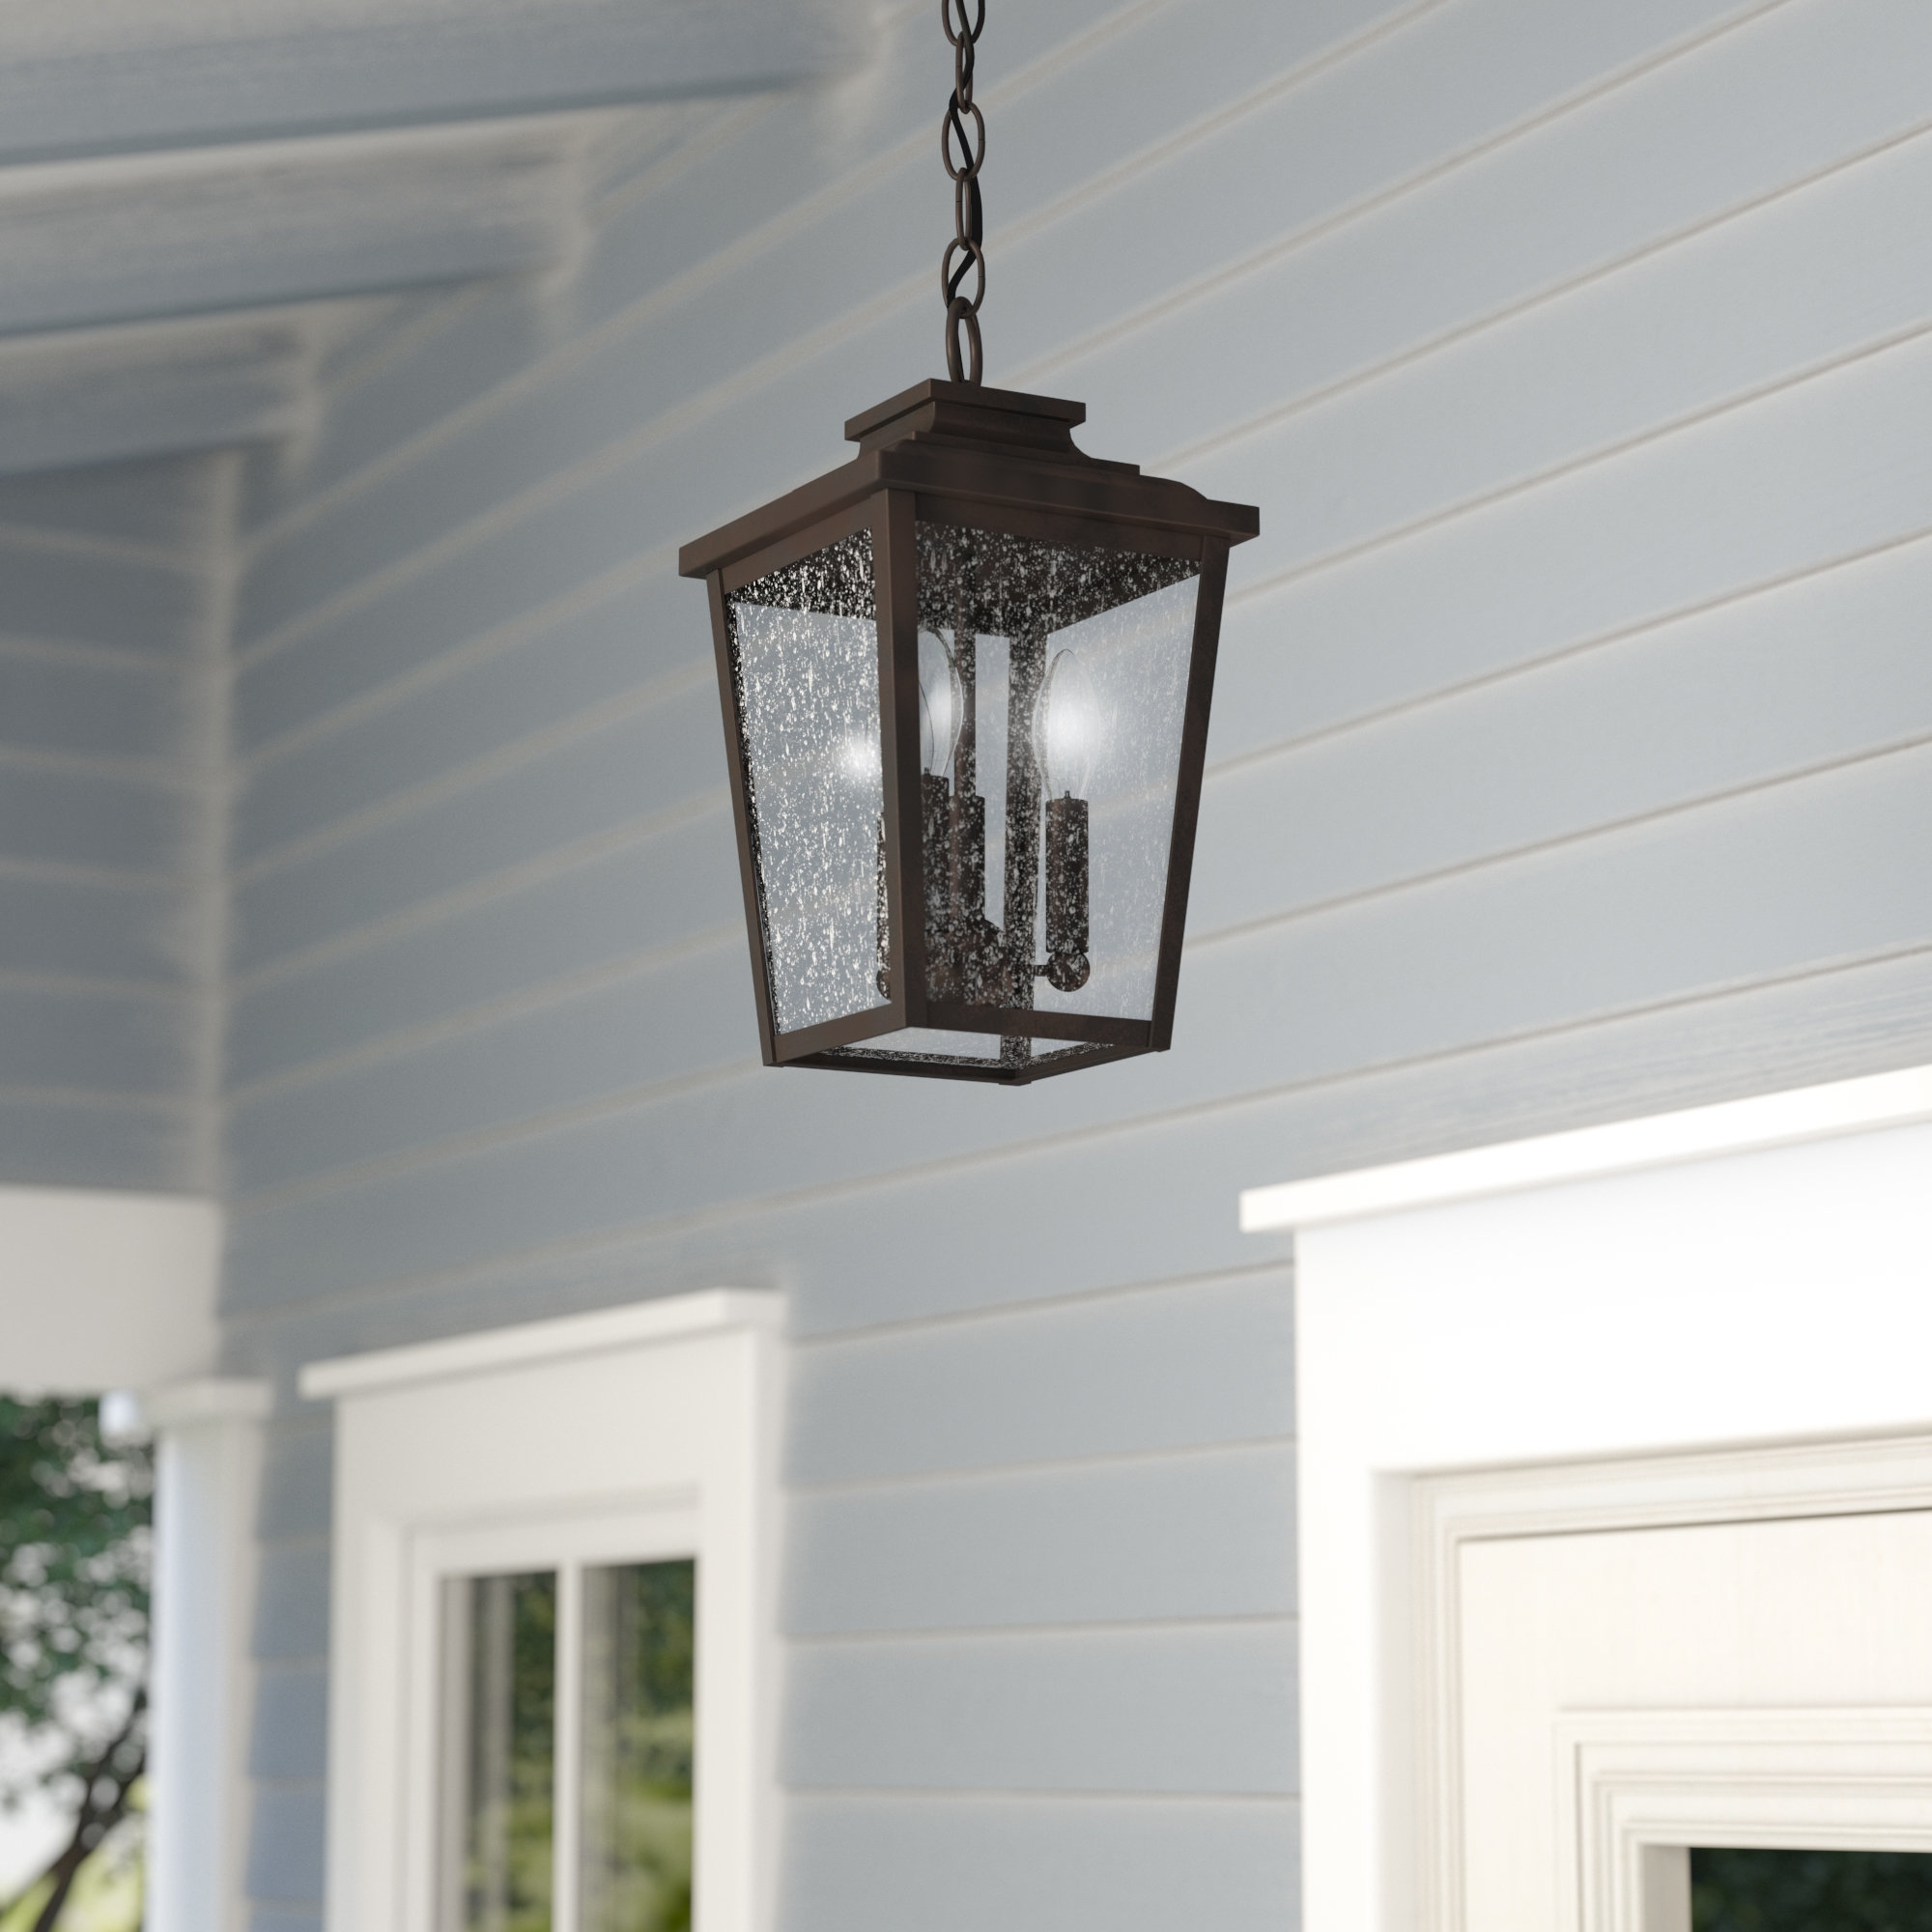 Outdoor Hanging Lights You'll Love | Wayfair With Regard To Outdoor Porch Lanterns (View 9 of 20)